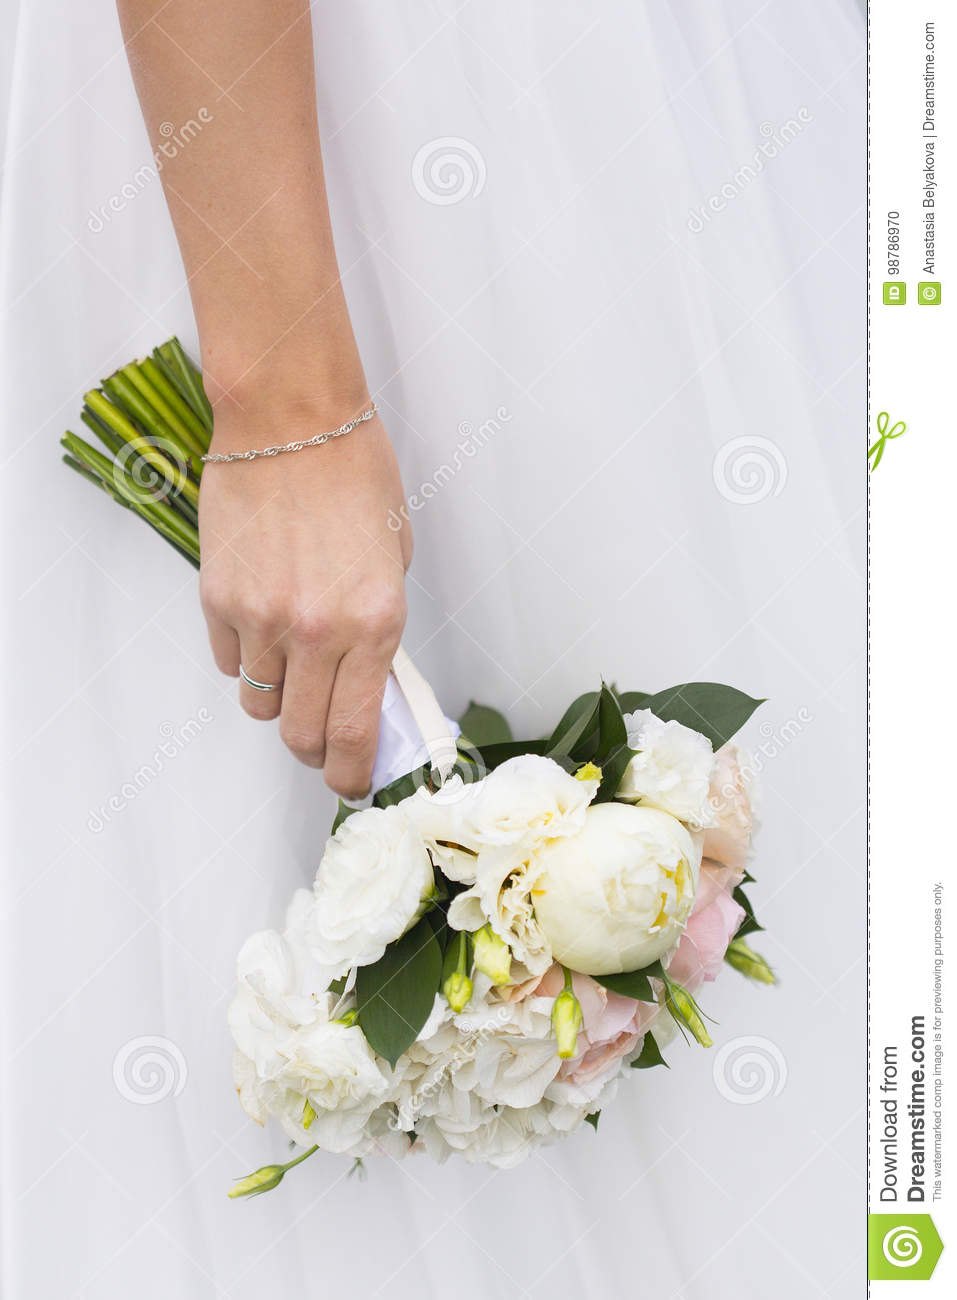 Wedding Bouquet Of Flowers White And Pink Roses In Hand Of Bride